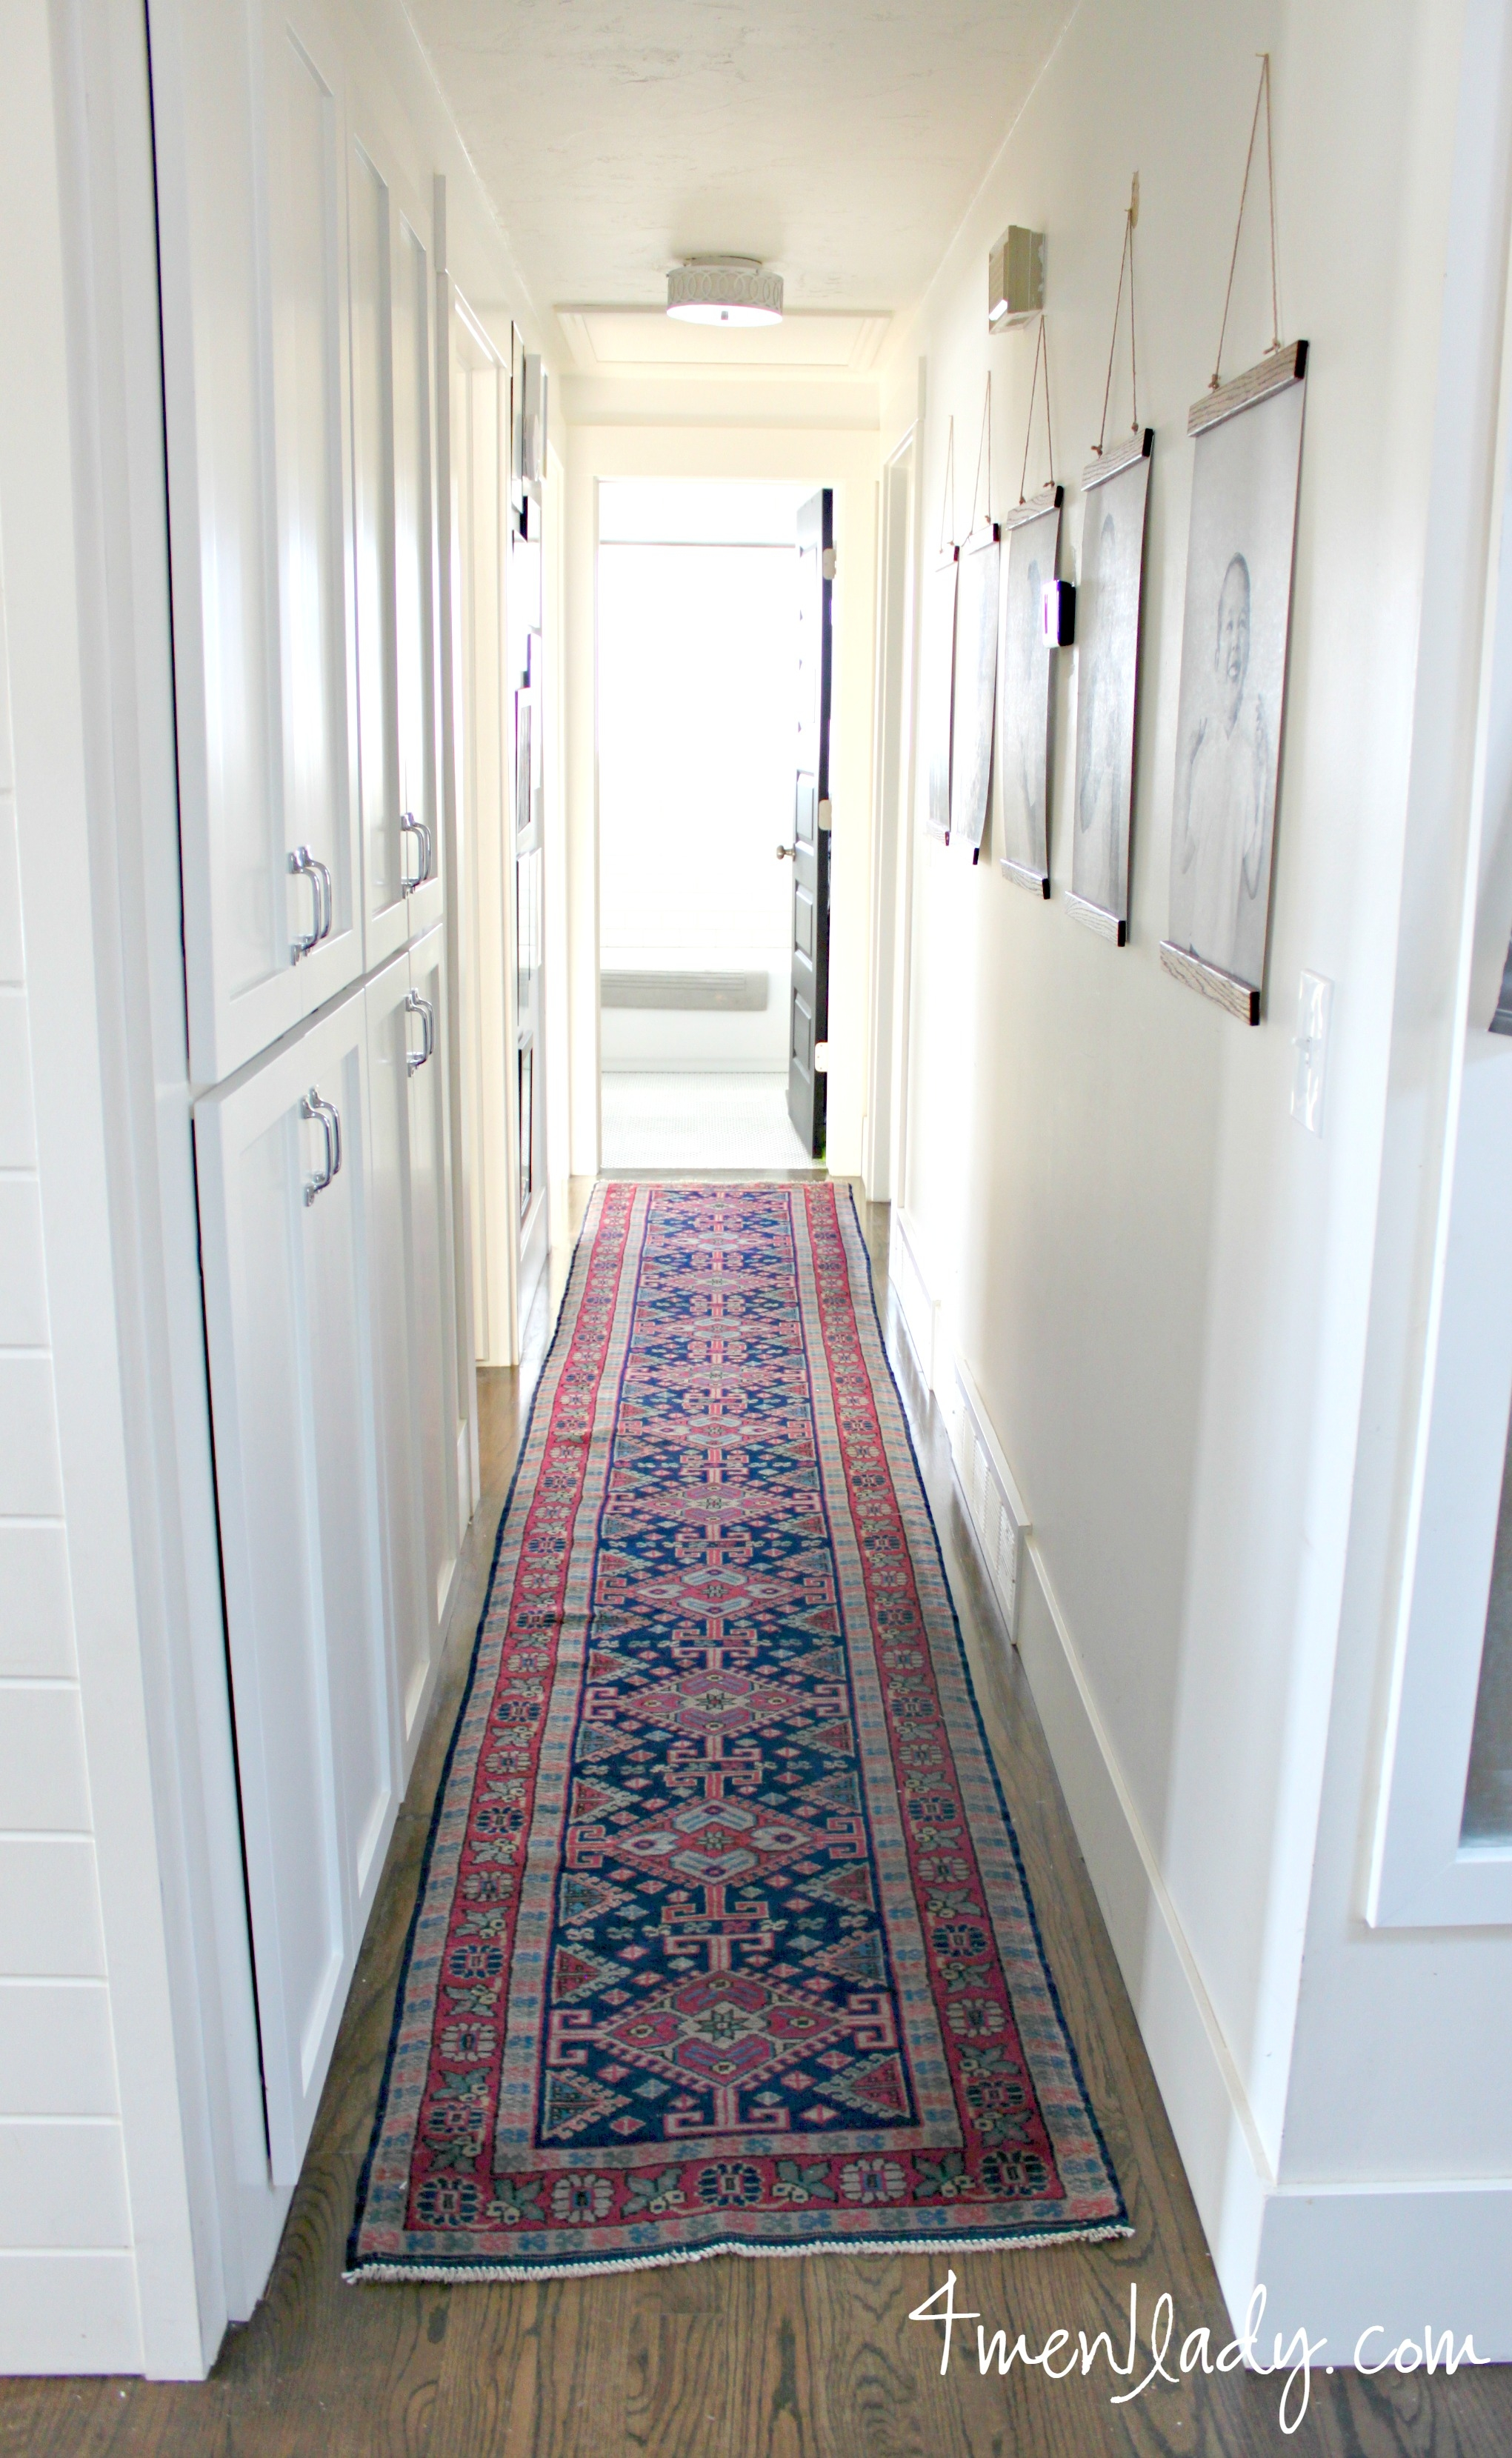 Flooring Lovely Hallway Runners For Floor Decor Idea With Regard To Extra Long Runners For Hallway (#12 of 20)